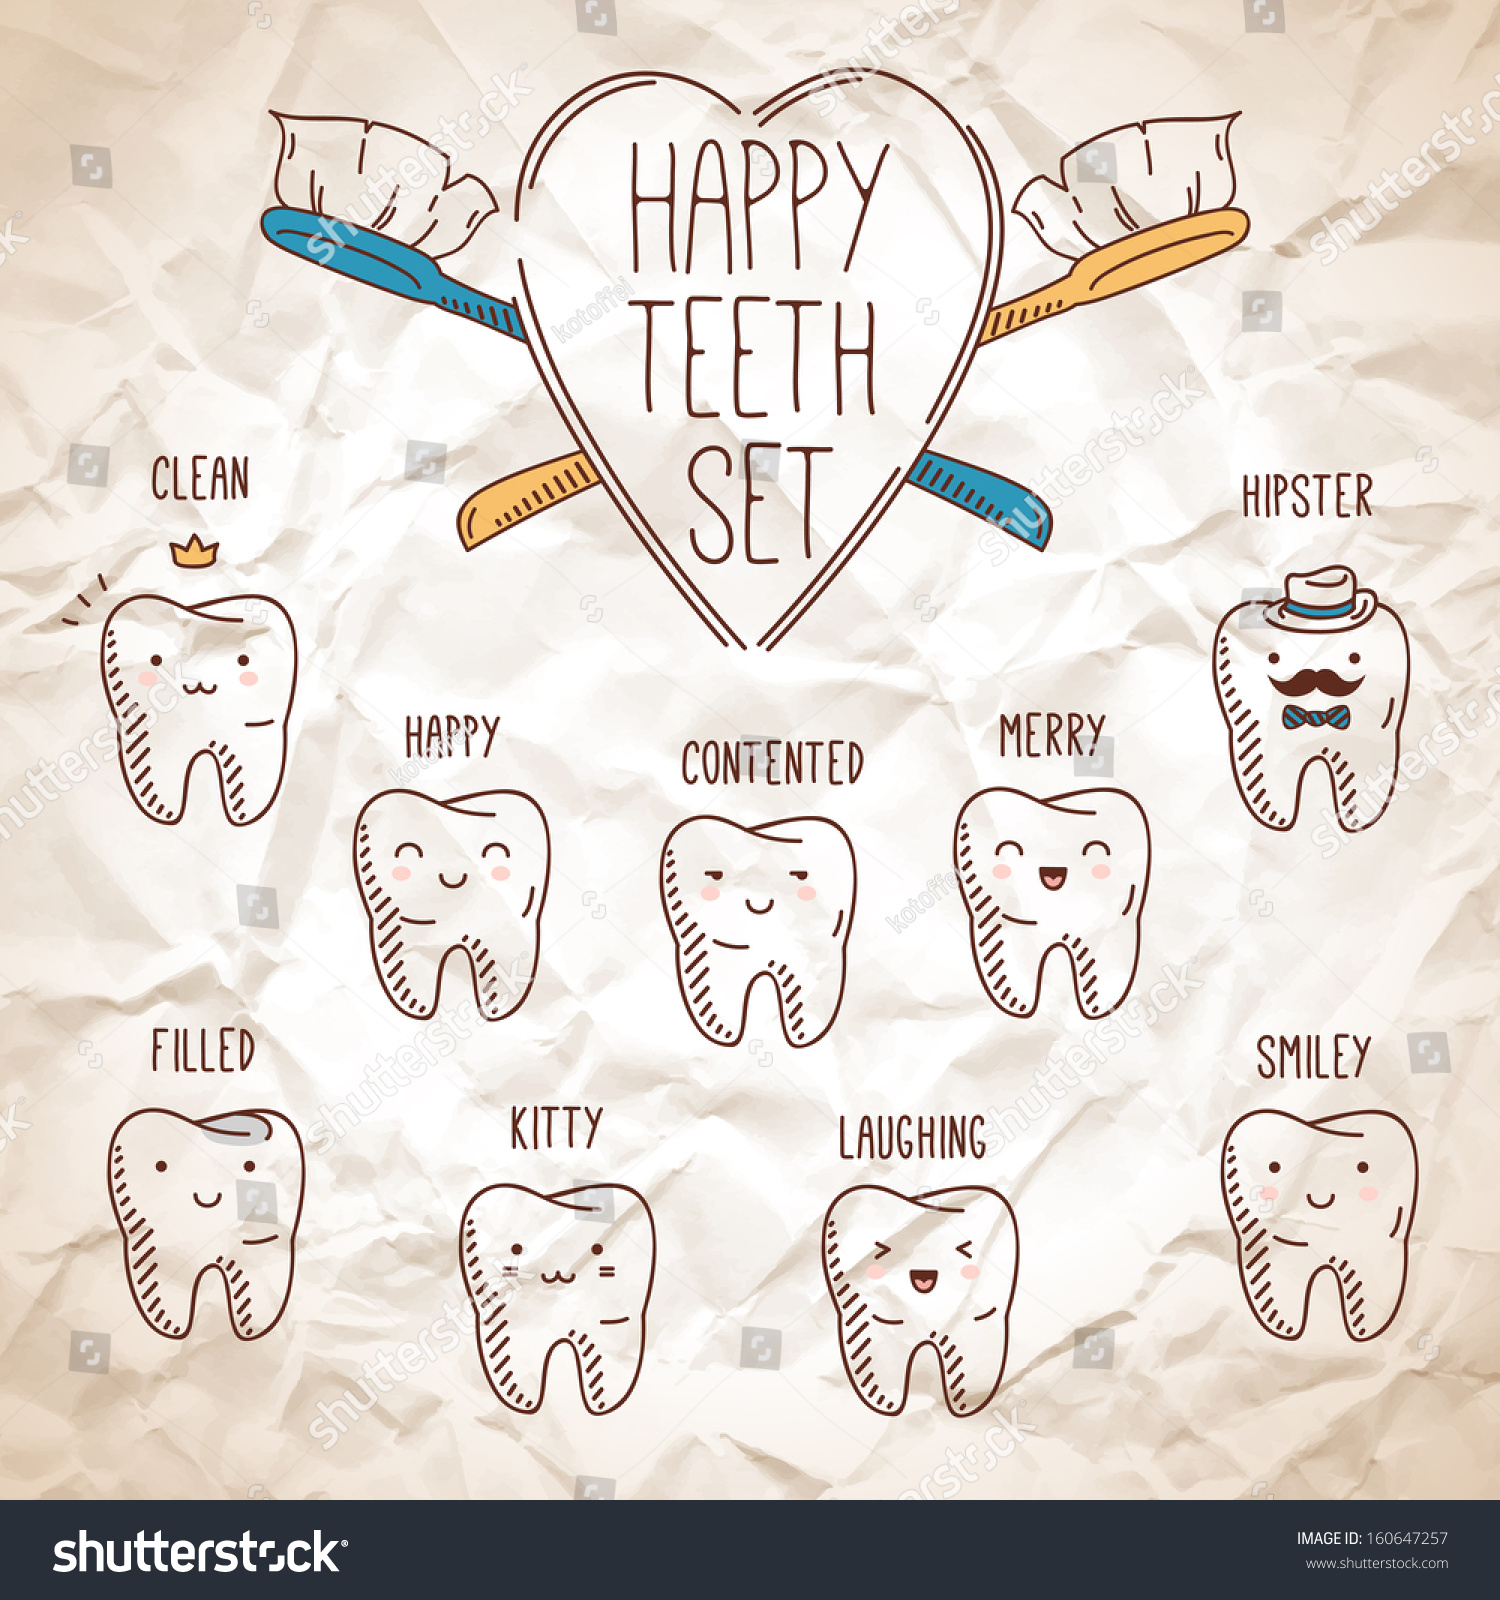 Happy Teeth Set Dental Collection Your Stock Vector ...